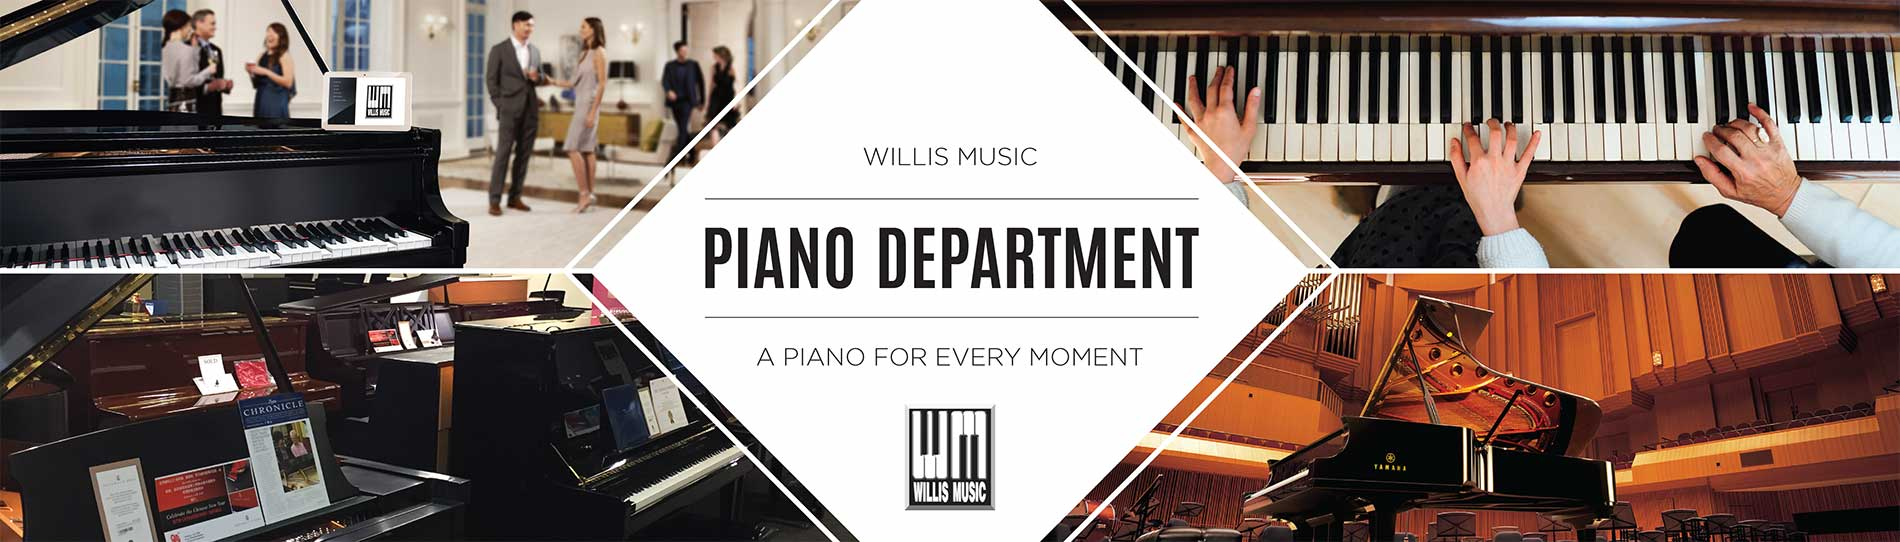 Piano Department Banner